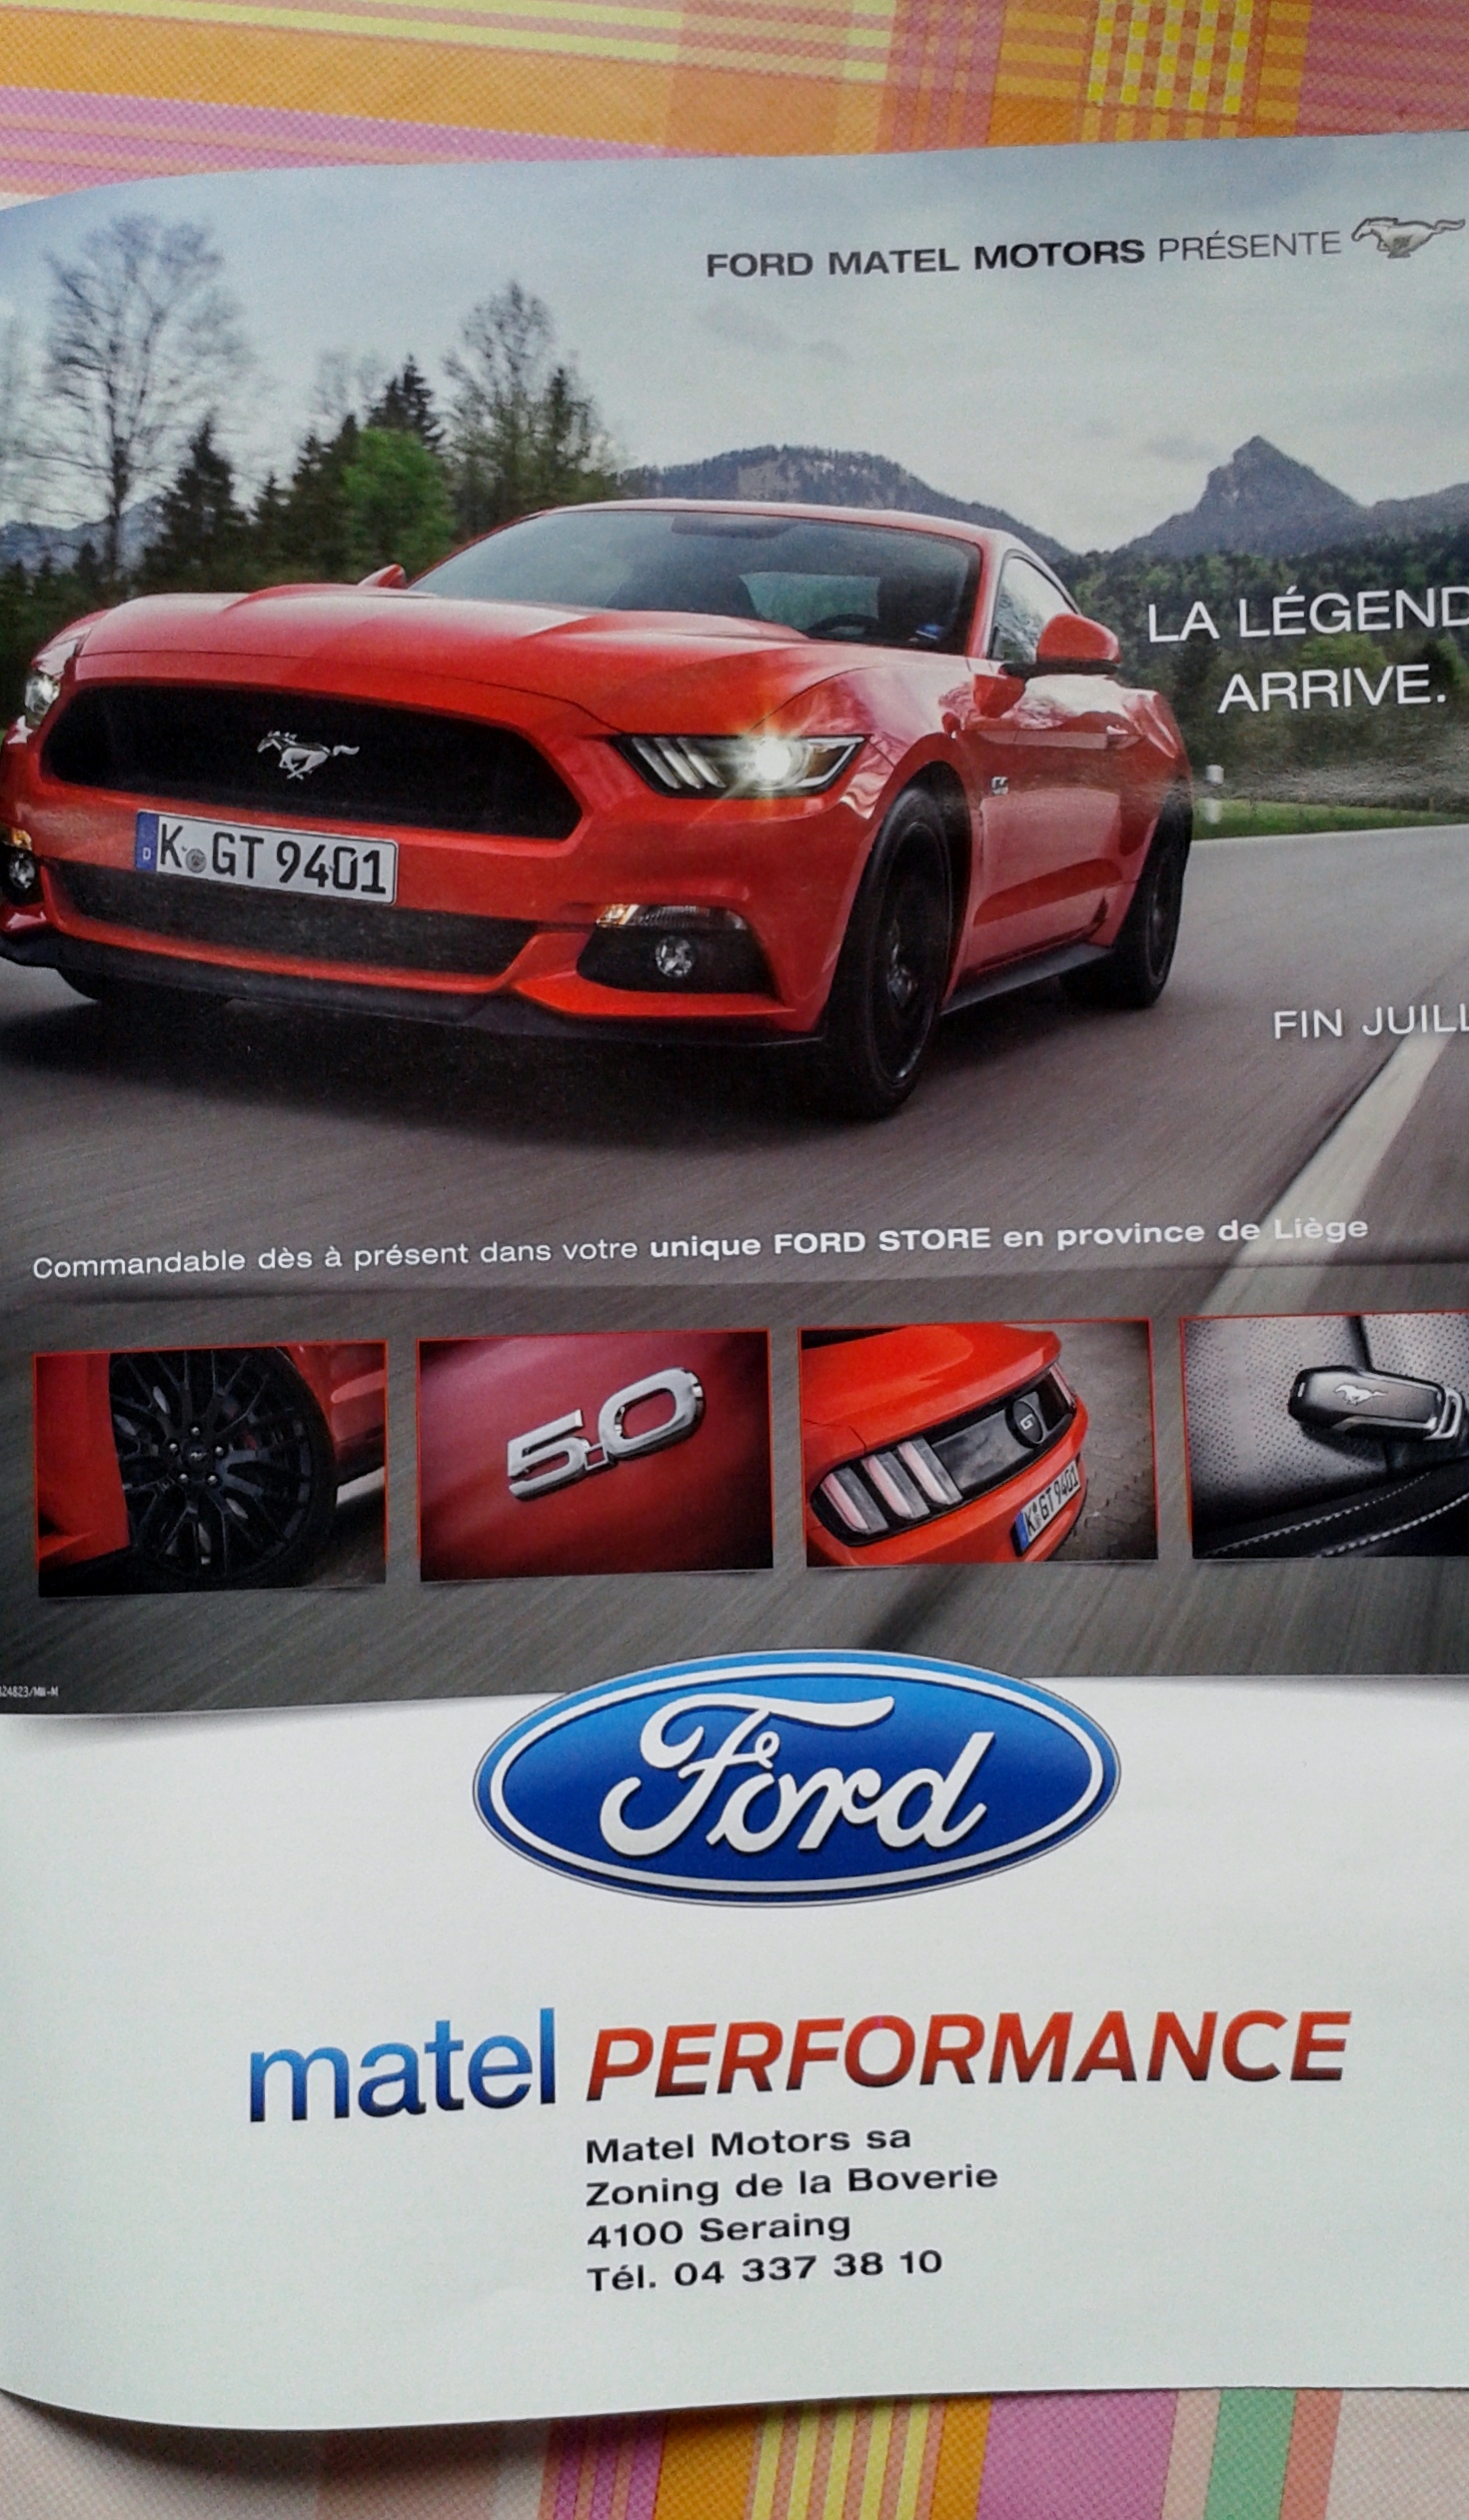 La Ford Mustang galope vers l'Europe 88599120150606090156